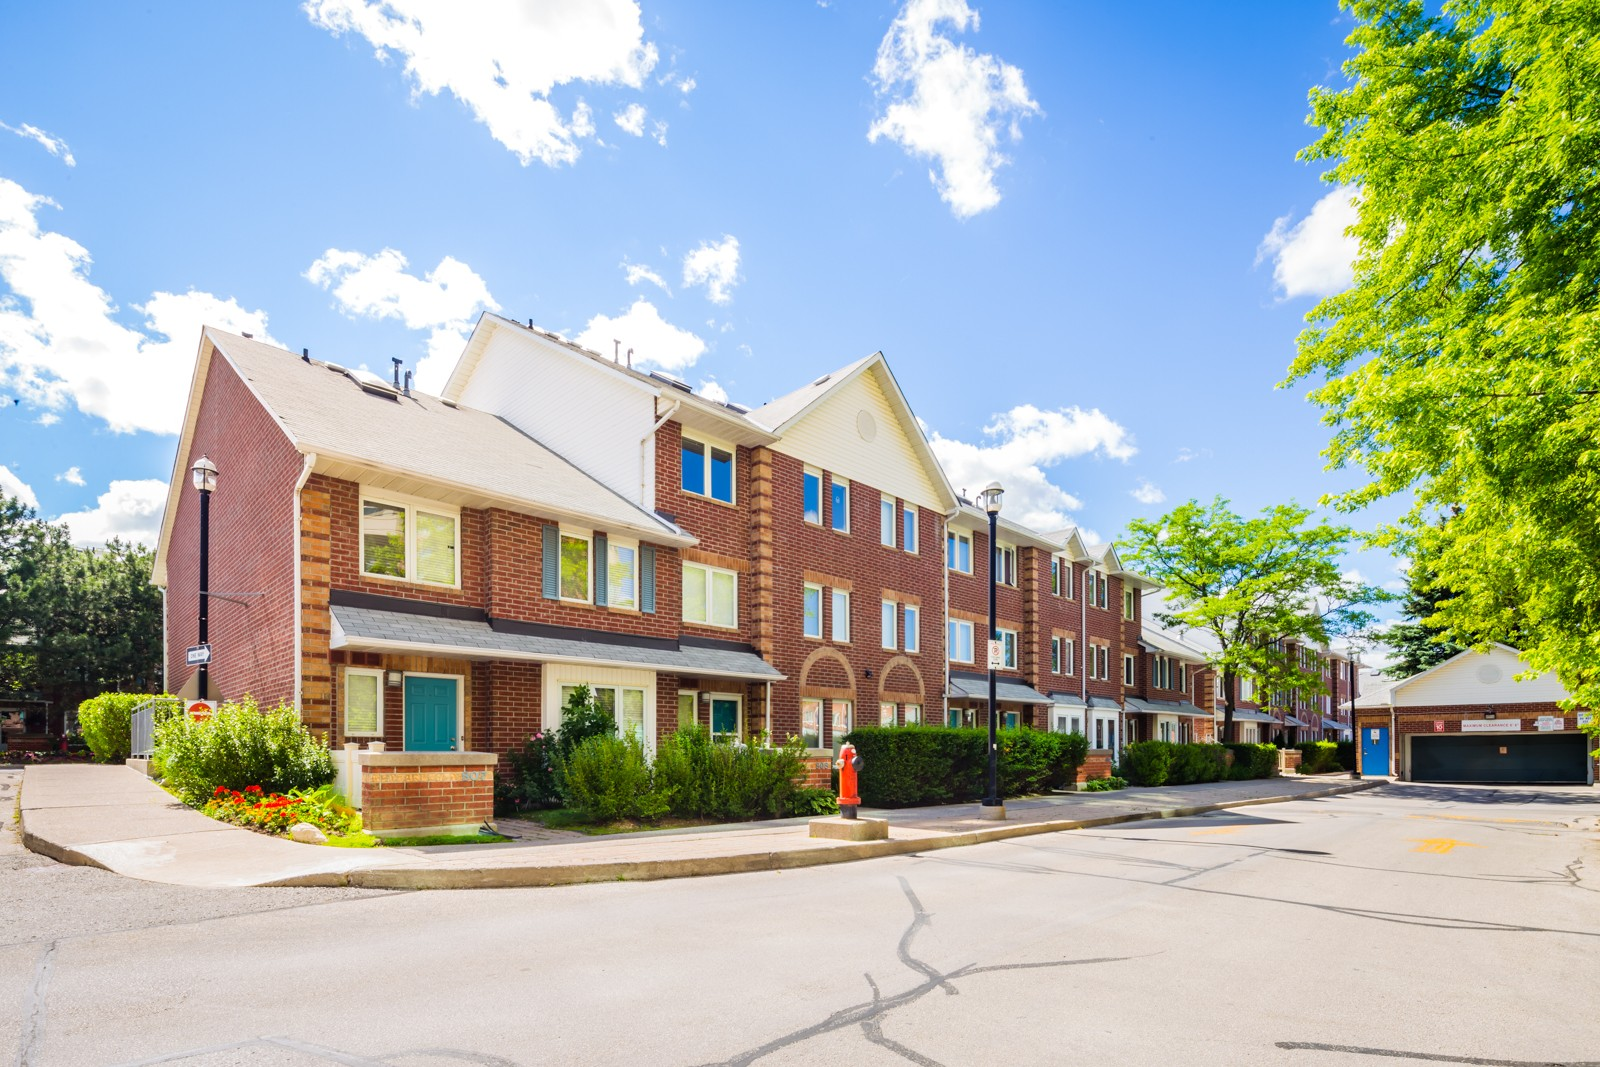 900 Steeles Ave Townhouses at 900 Steeles Ave W, Vaughan 0